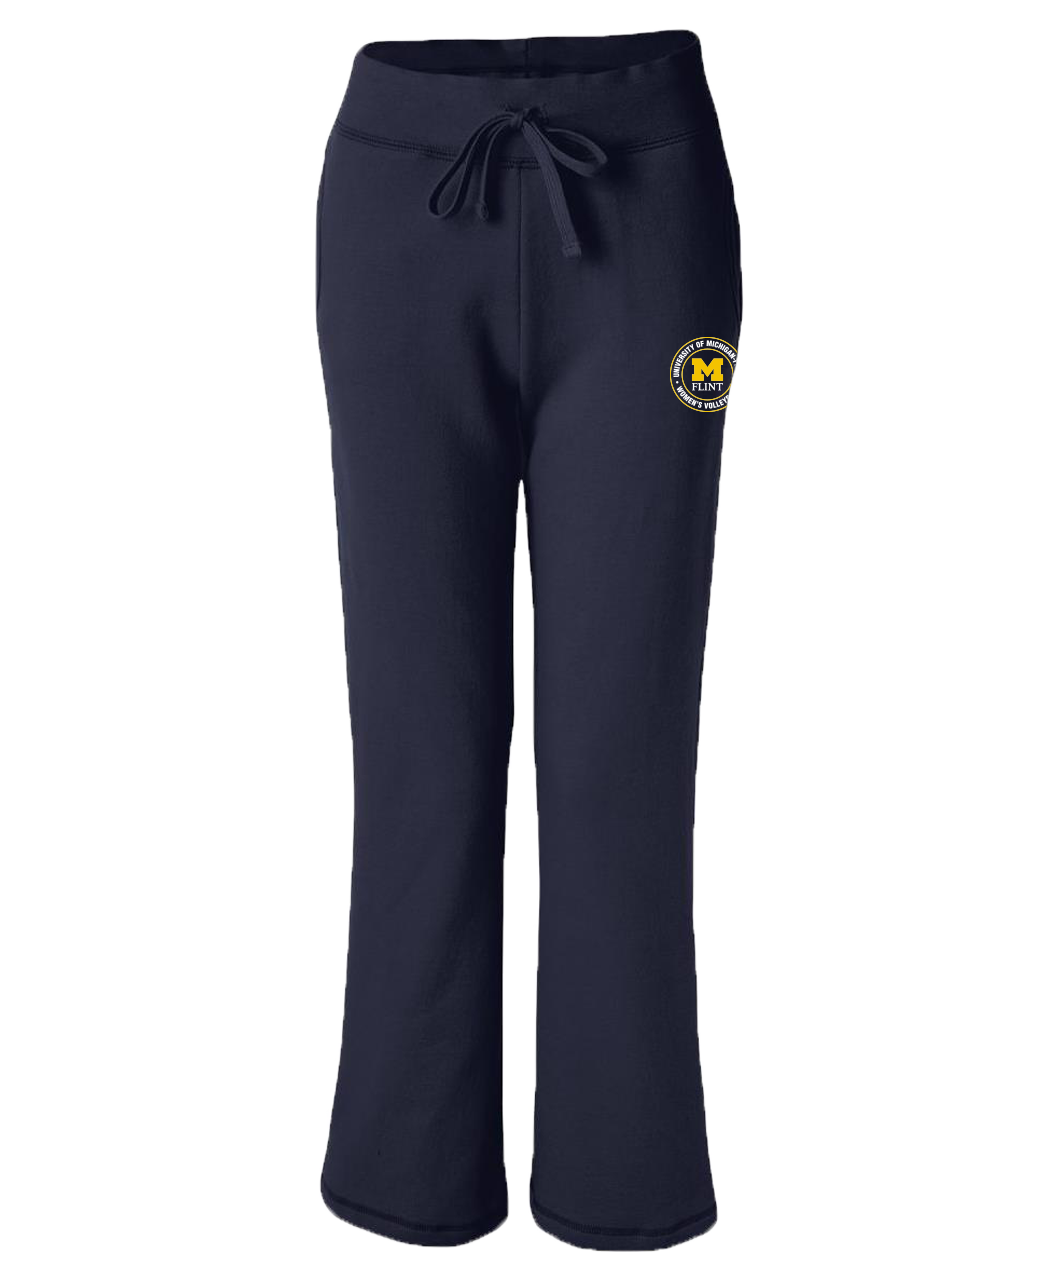 UofM Flint Circle Design Navy Ladies Open Bottom Sweatpants